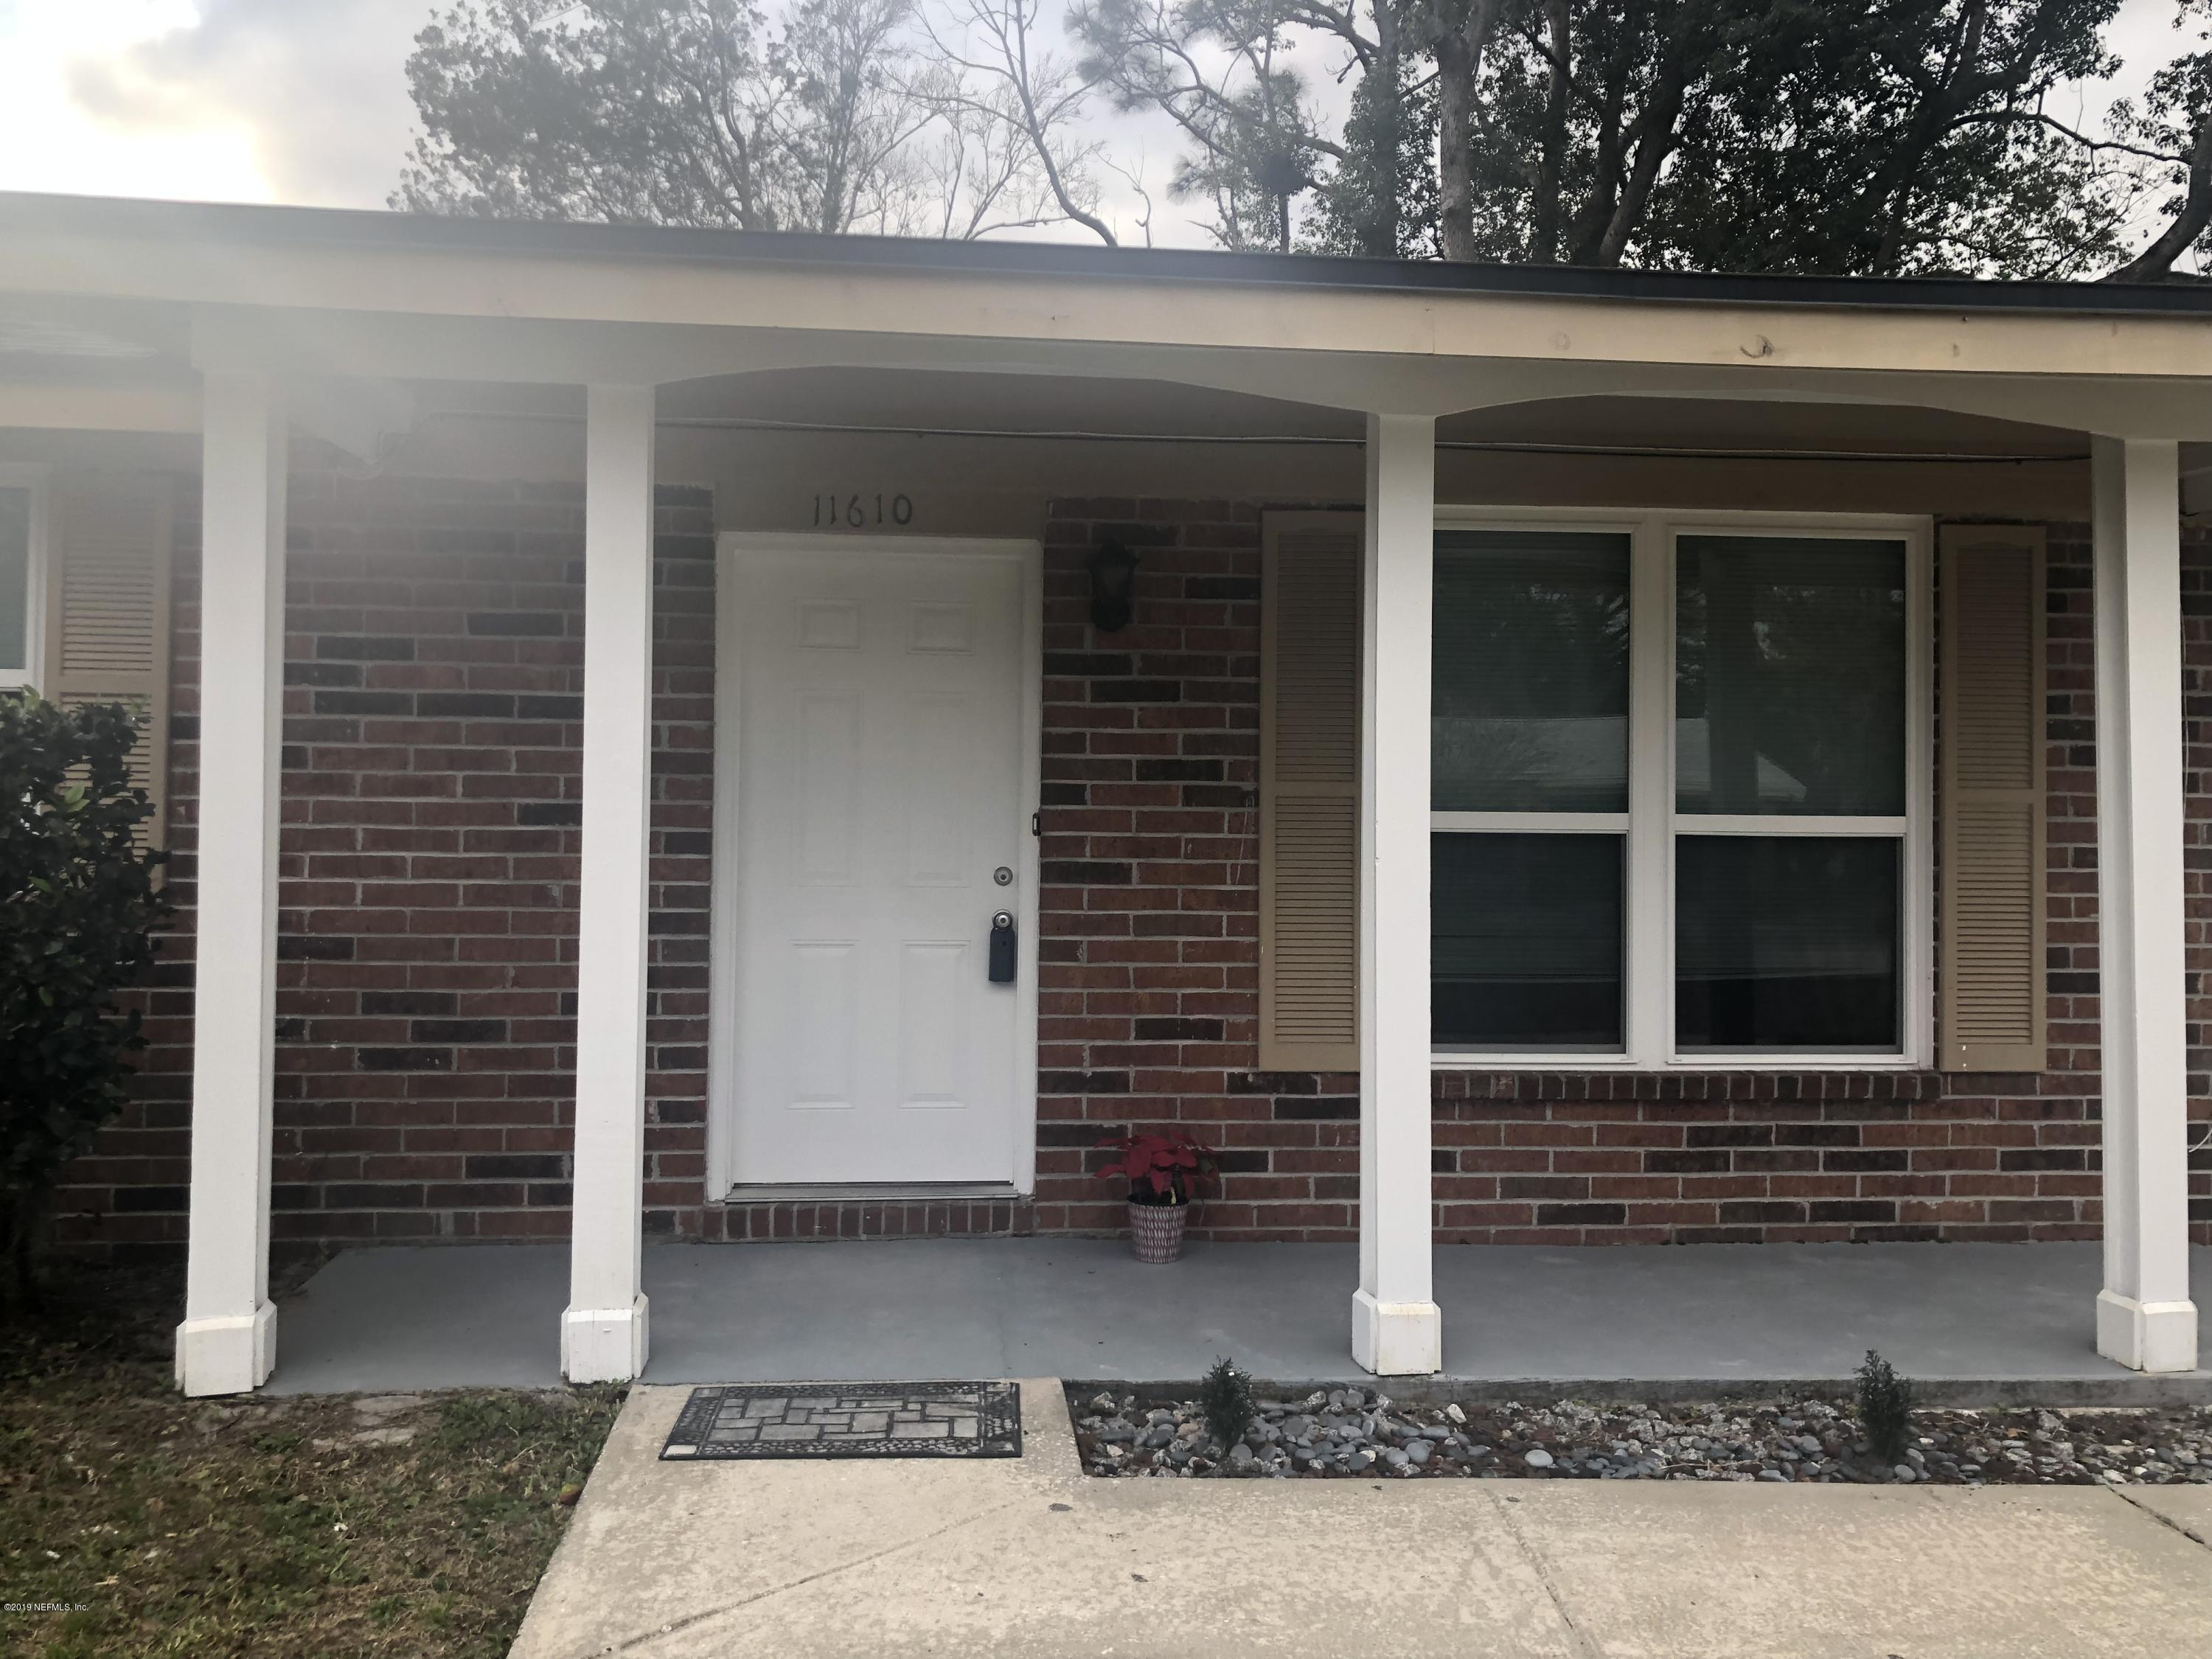 11610 RIDE, JACKSONVILLE, FLORIDA 32223, 3 Bedrooms Bedrooms, ,2 BathroomsBathrooms,Residential - single family,For sale,RIDE,974716